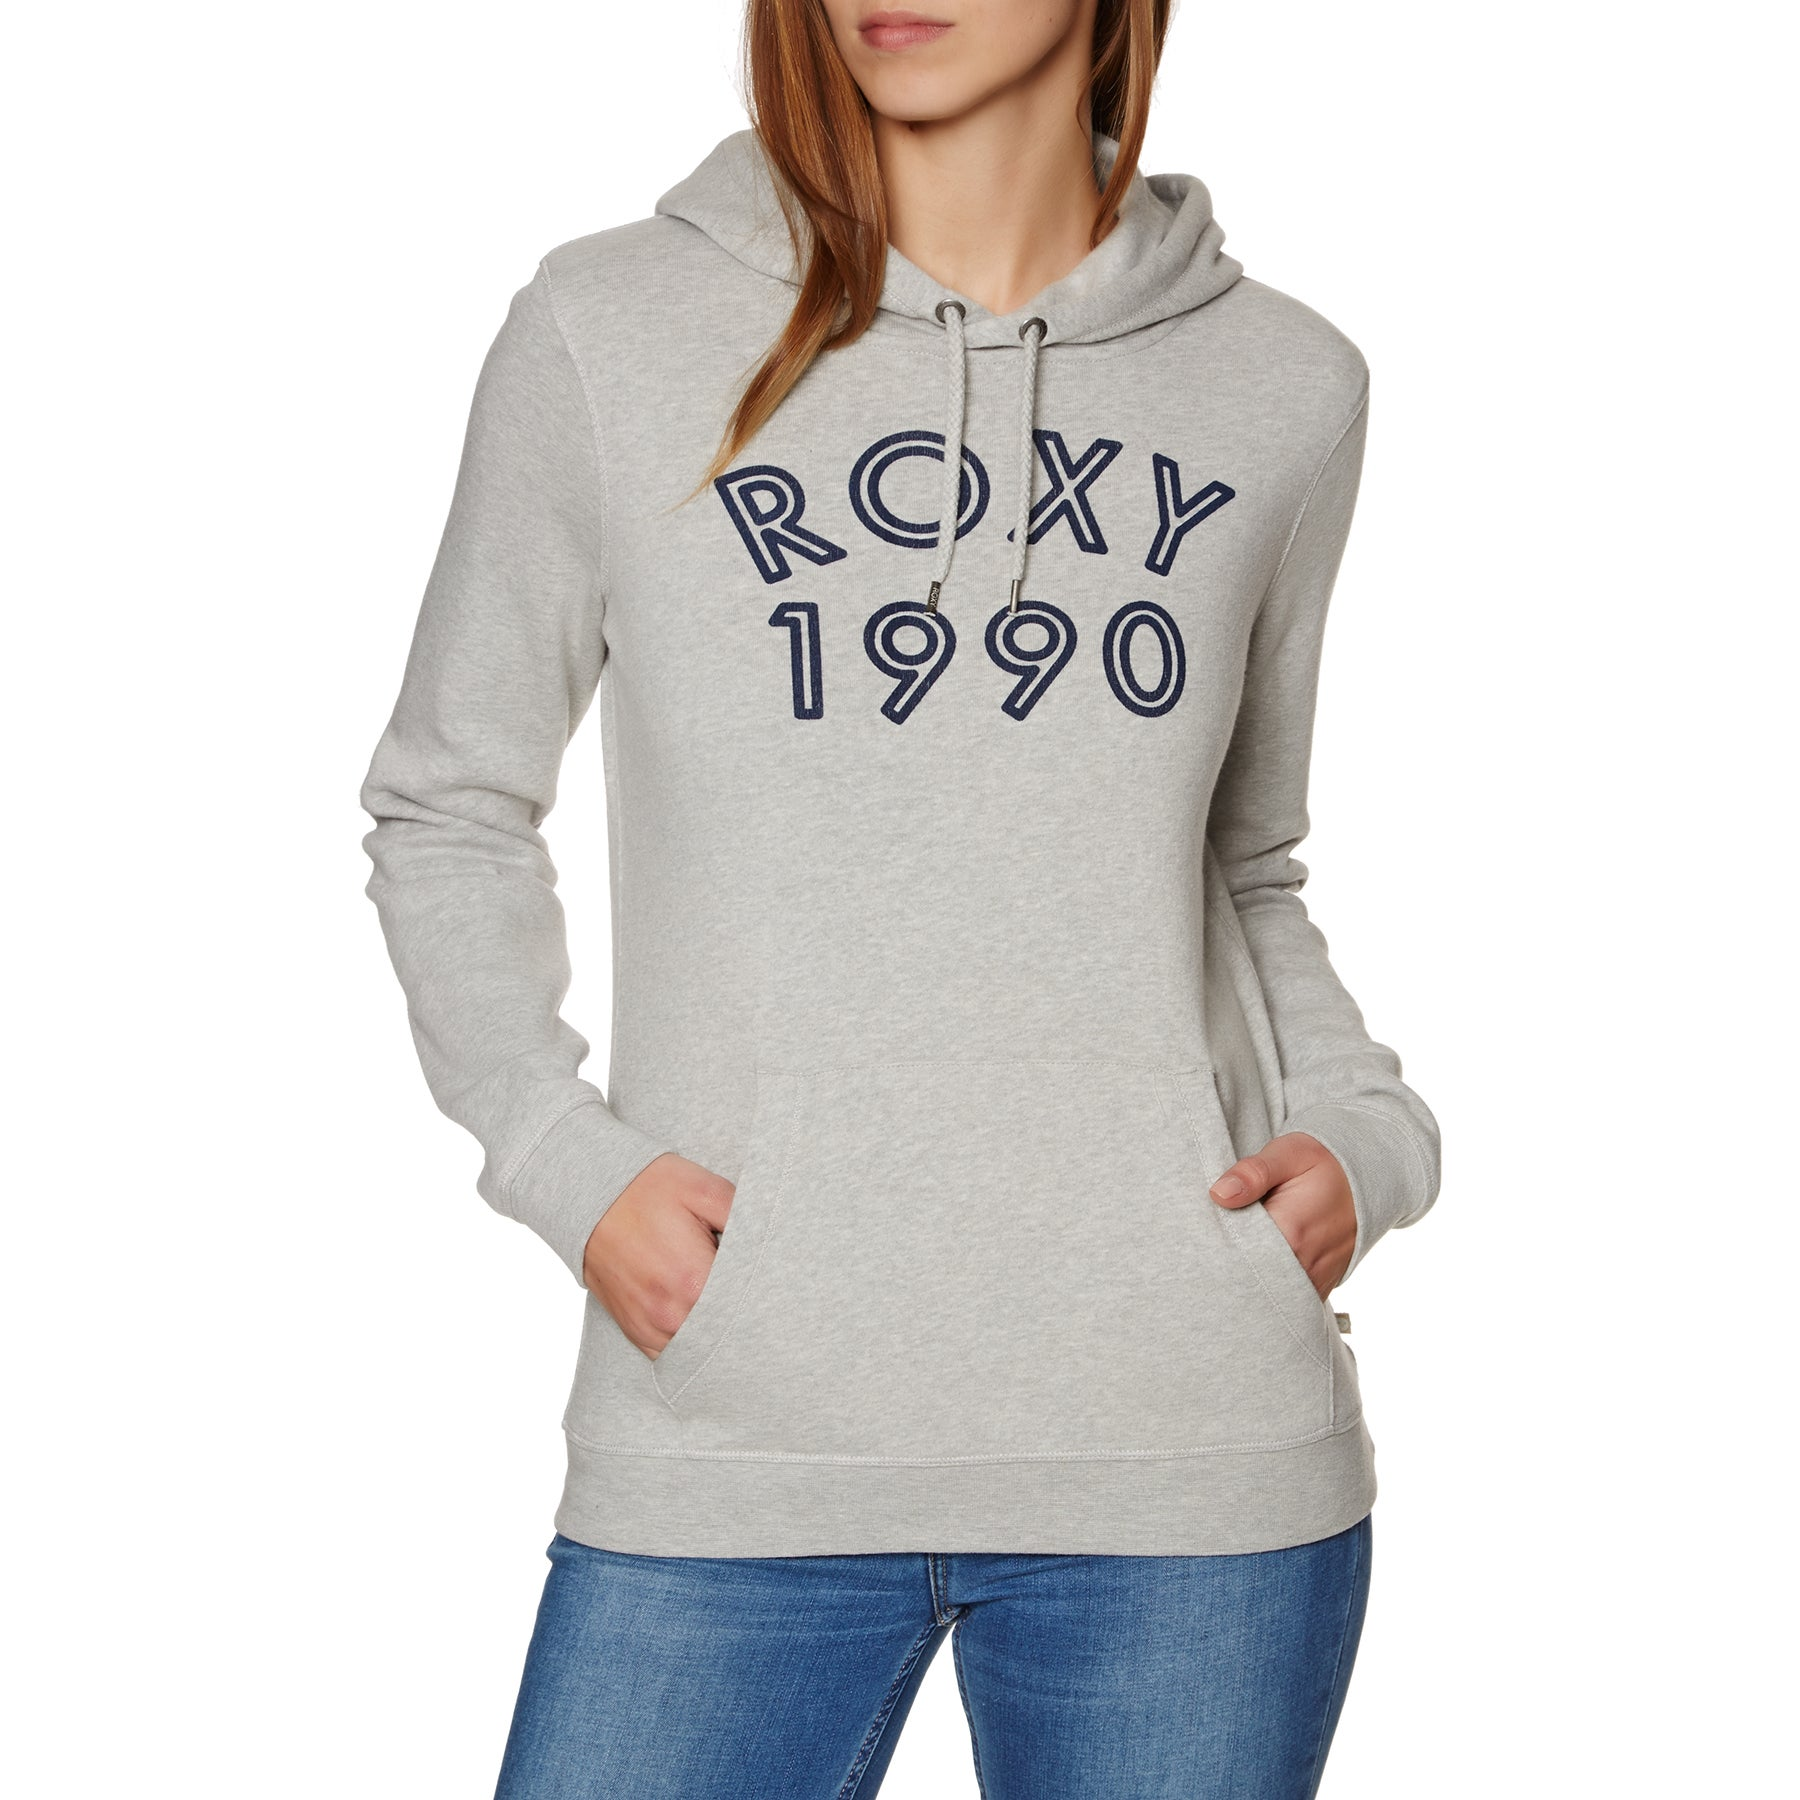 Roxy Full Of Joy Womens Pullover Hoody - Heritage Heather